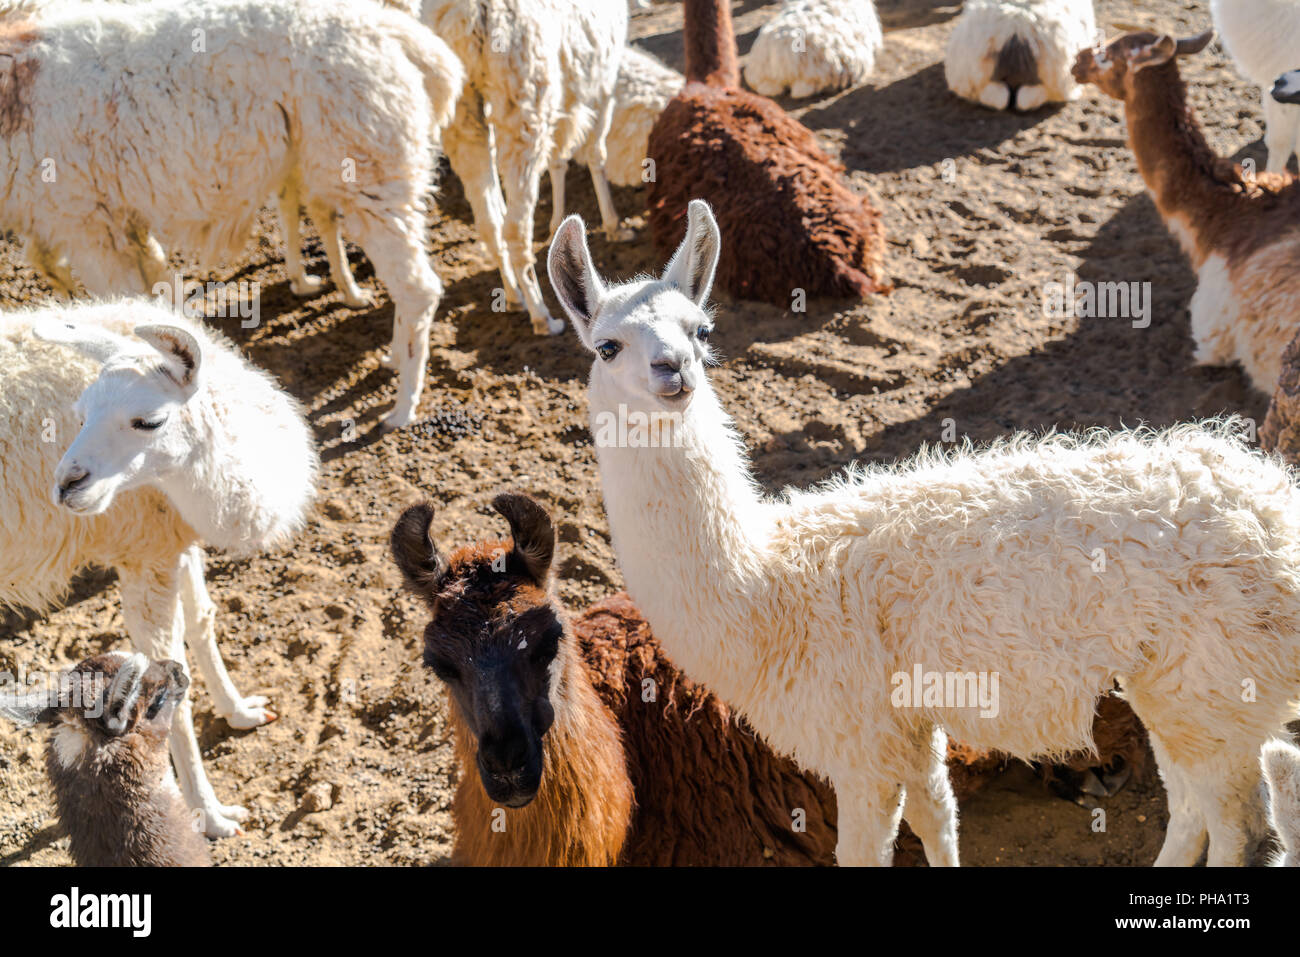 Flock of Llama resting on the ground - Stock Image